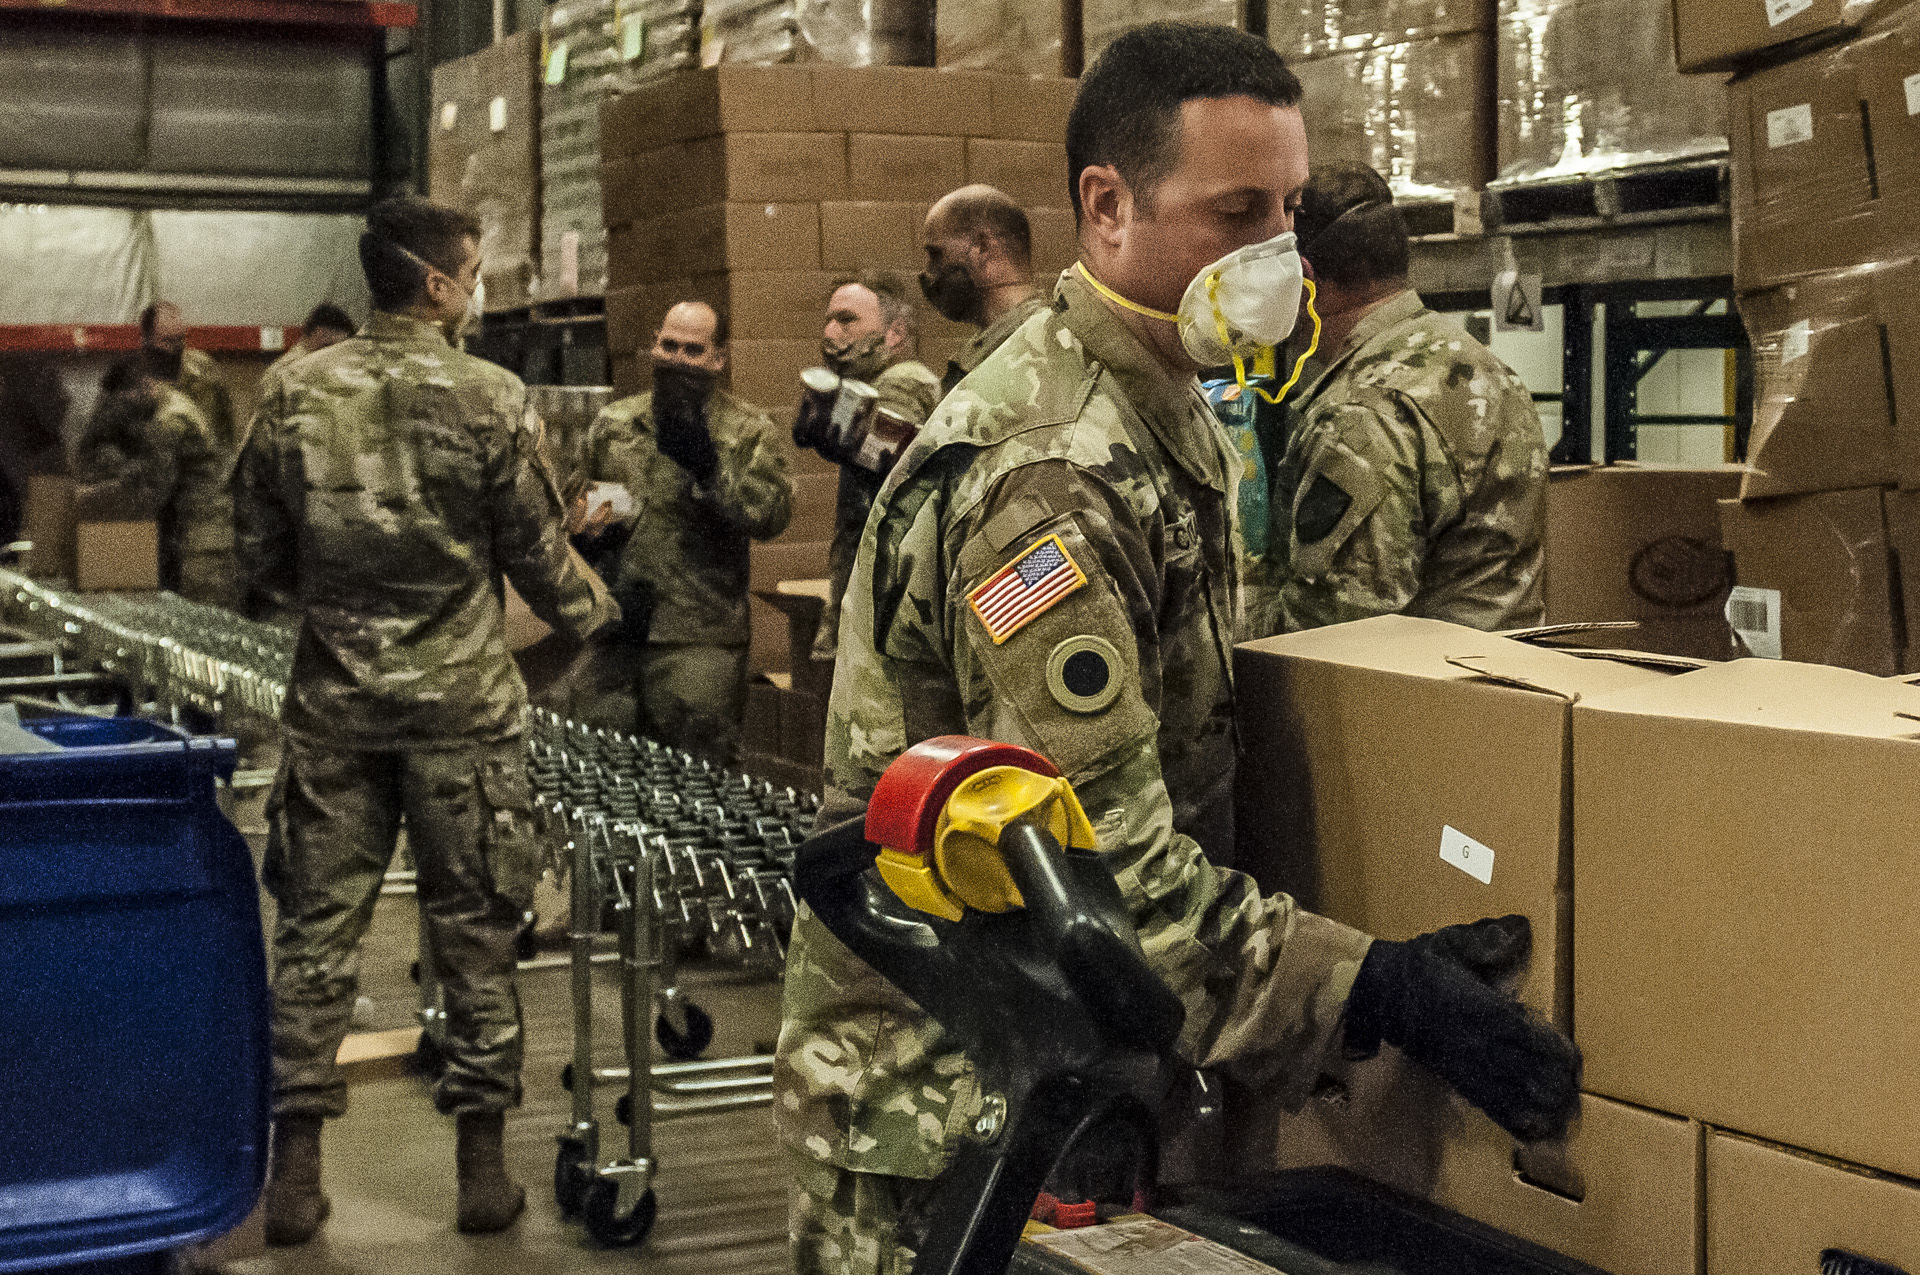 Soldiers pack boxes in assembly line.